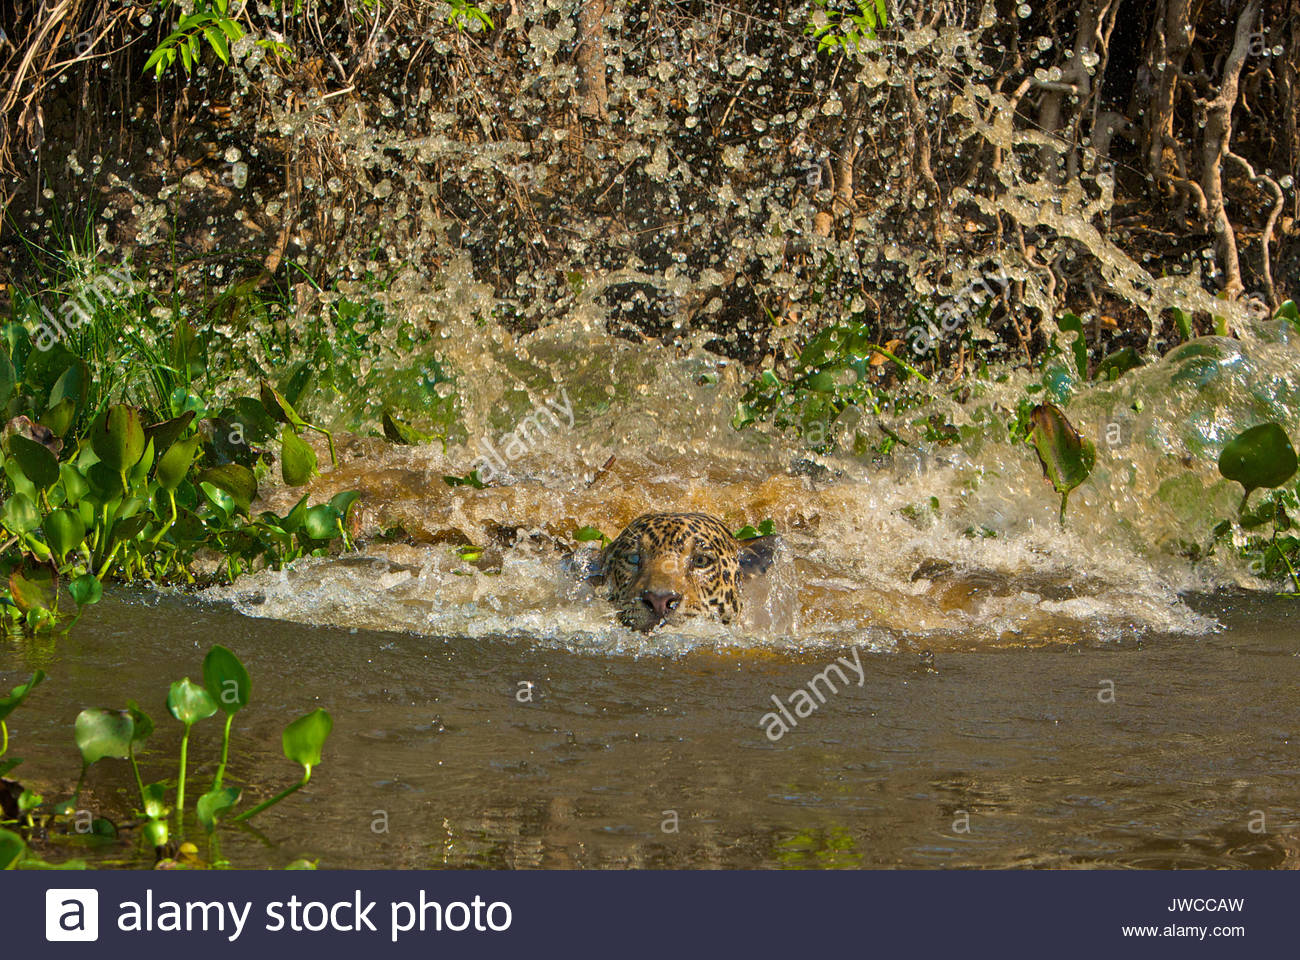 A jaguar leaps into Cuiaba River in the Brazilian Pantanal. Unlike most other cats,jaguars will chase their prey into the water,or fish for dinner. - Stock Image